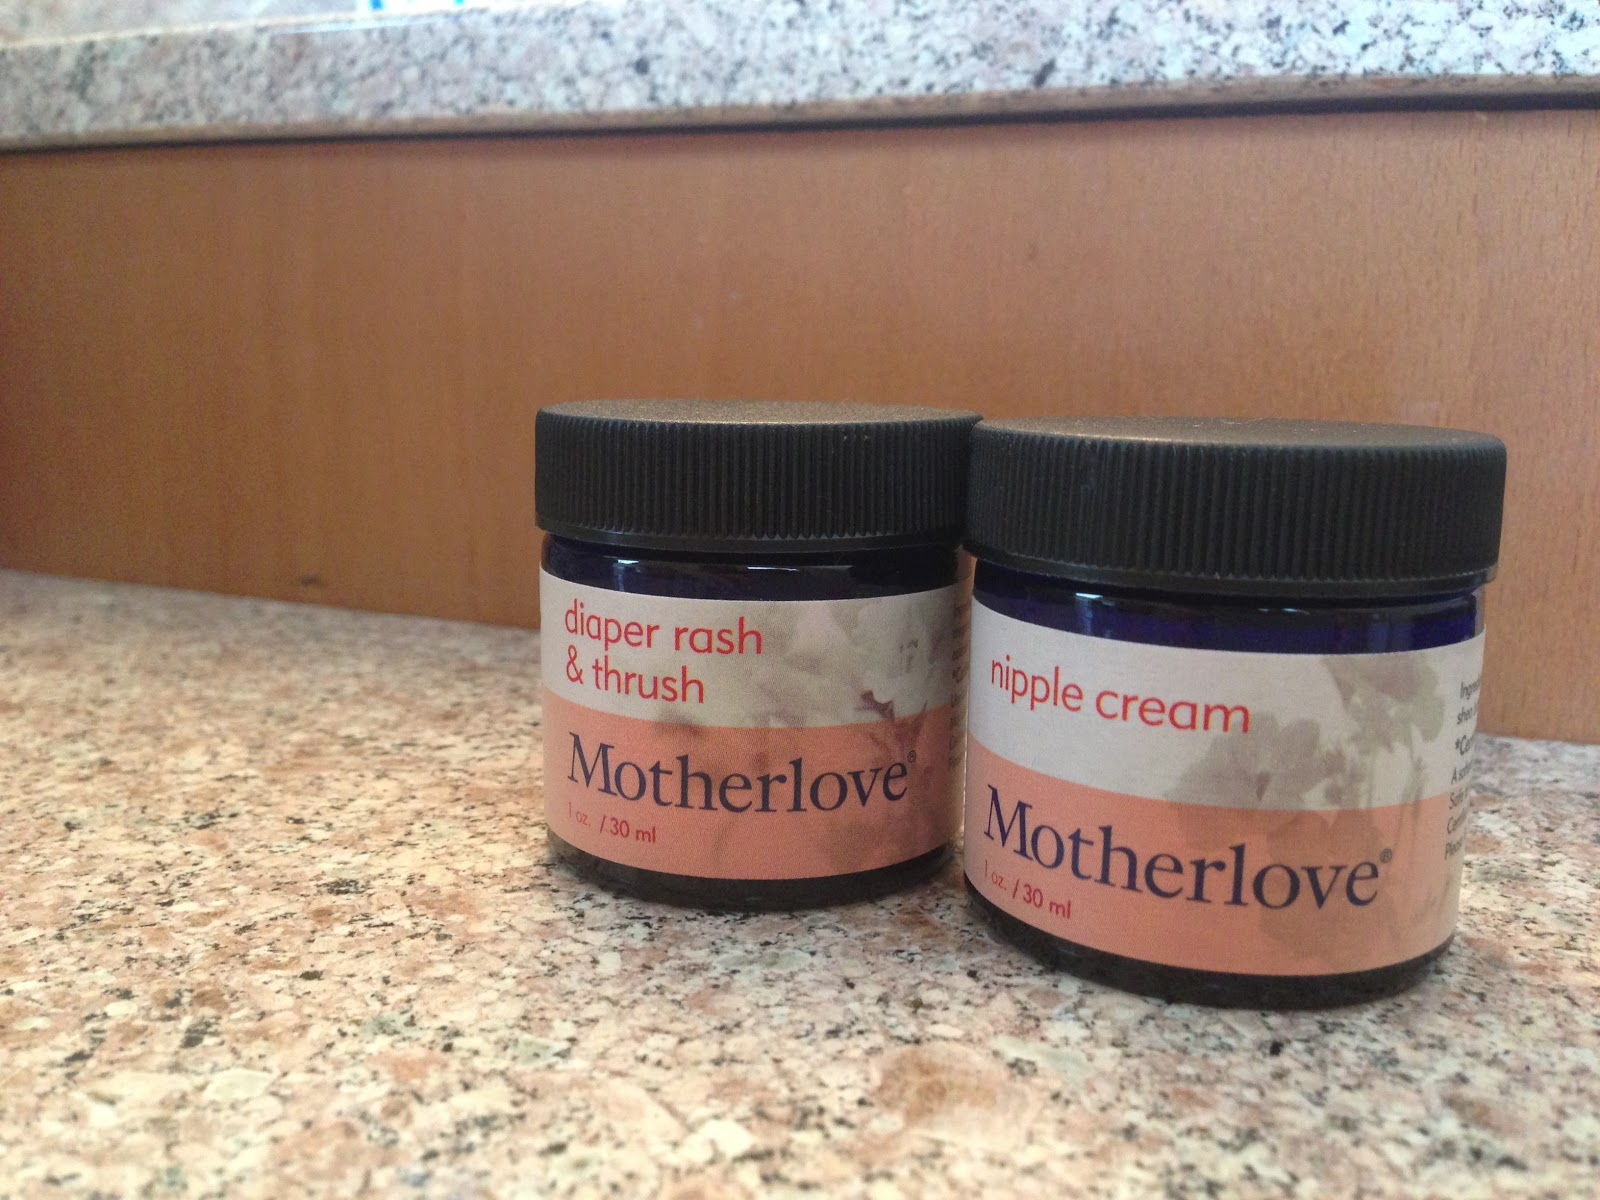 Every Child Is A Blessing Review Motherlove Nipple Cream And